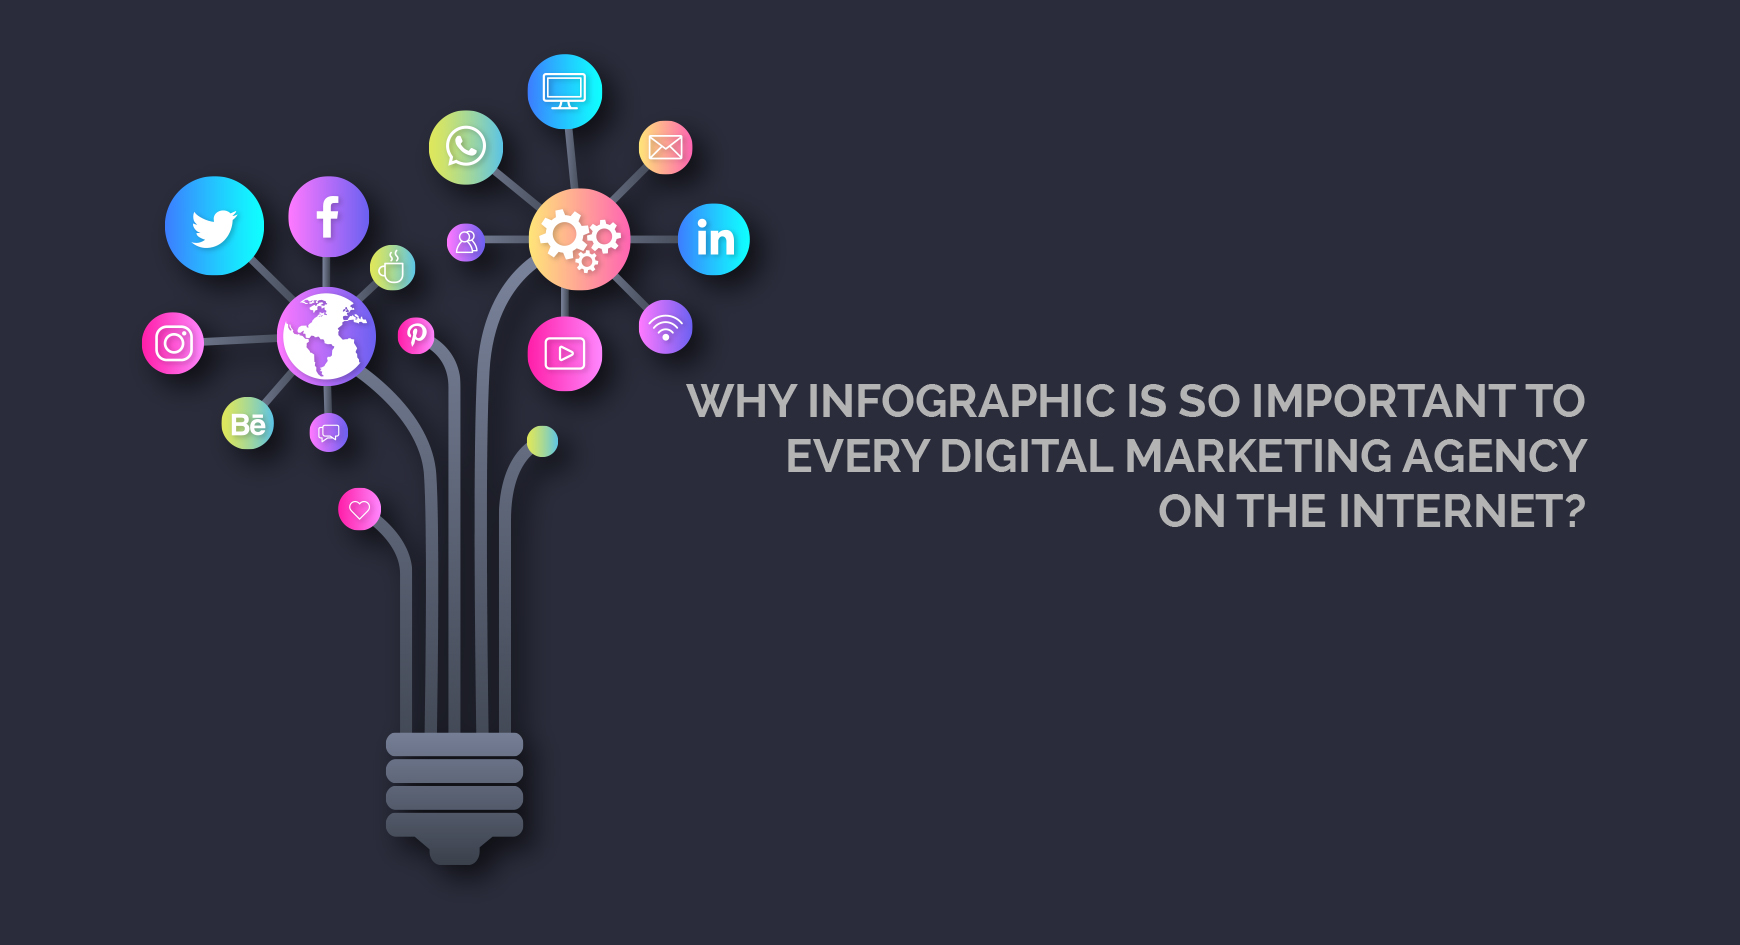 Why infographic is so important to every Digital Marketing Agency on the internet?